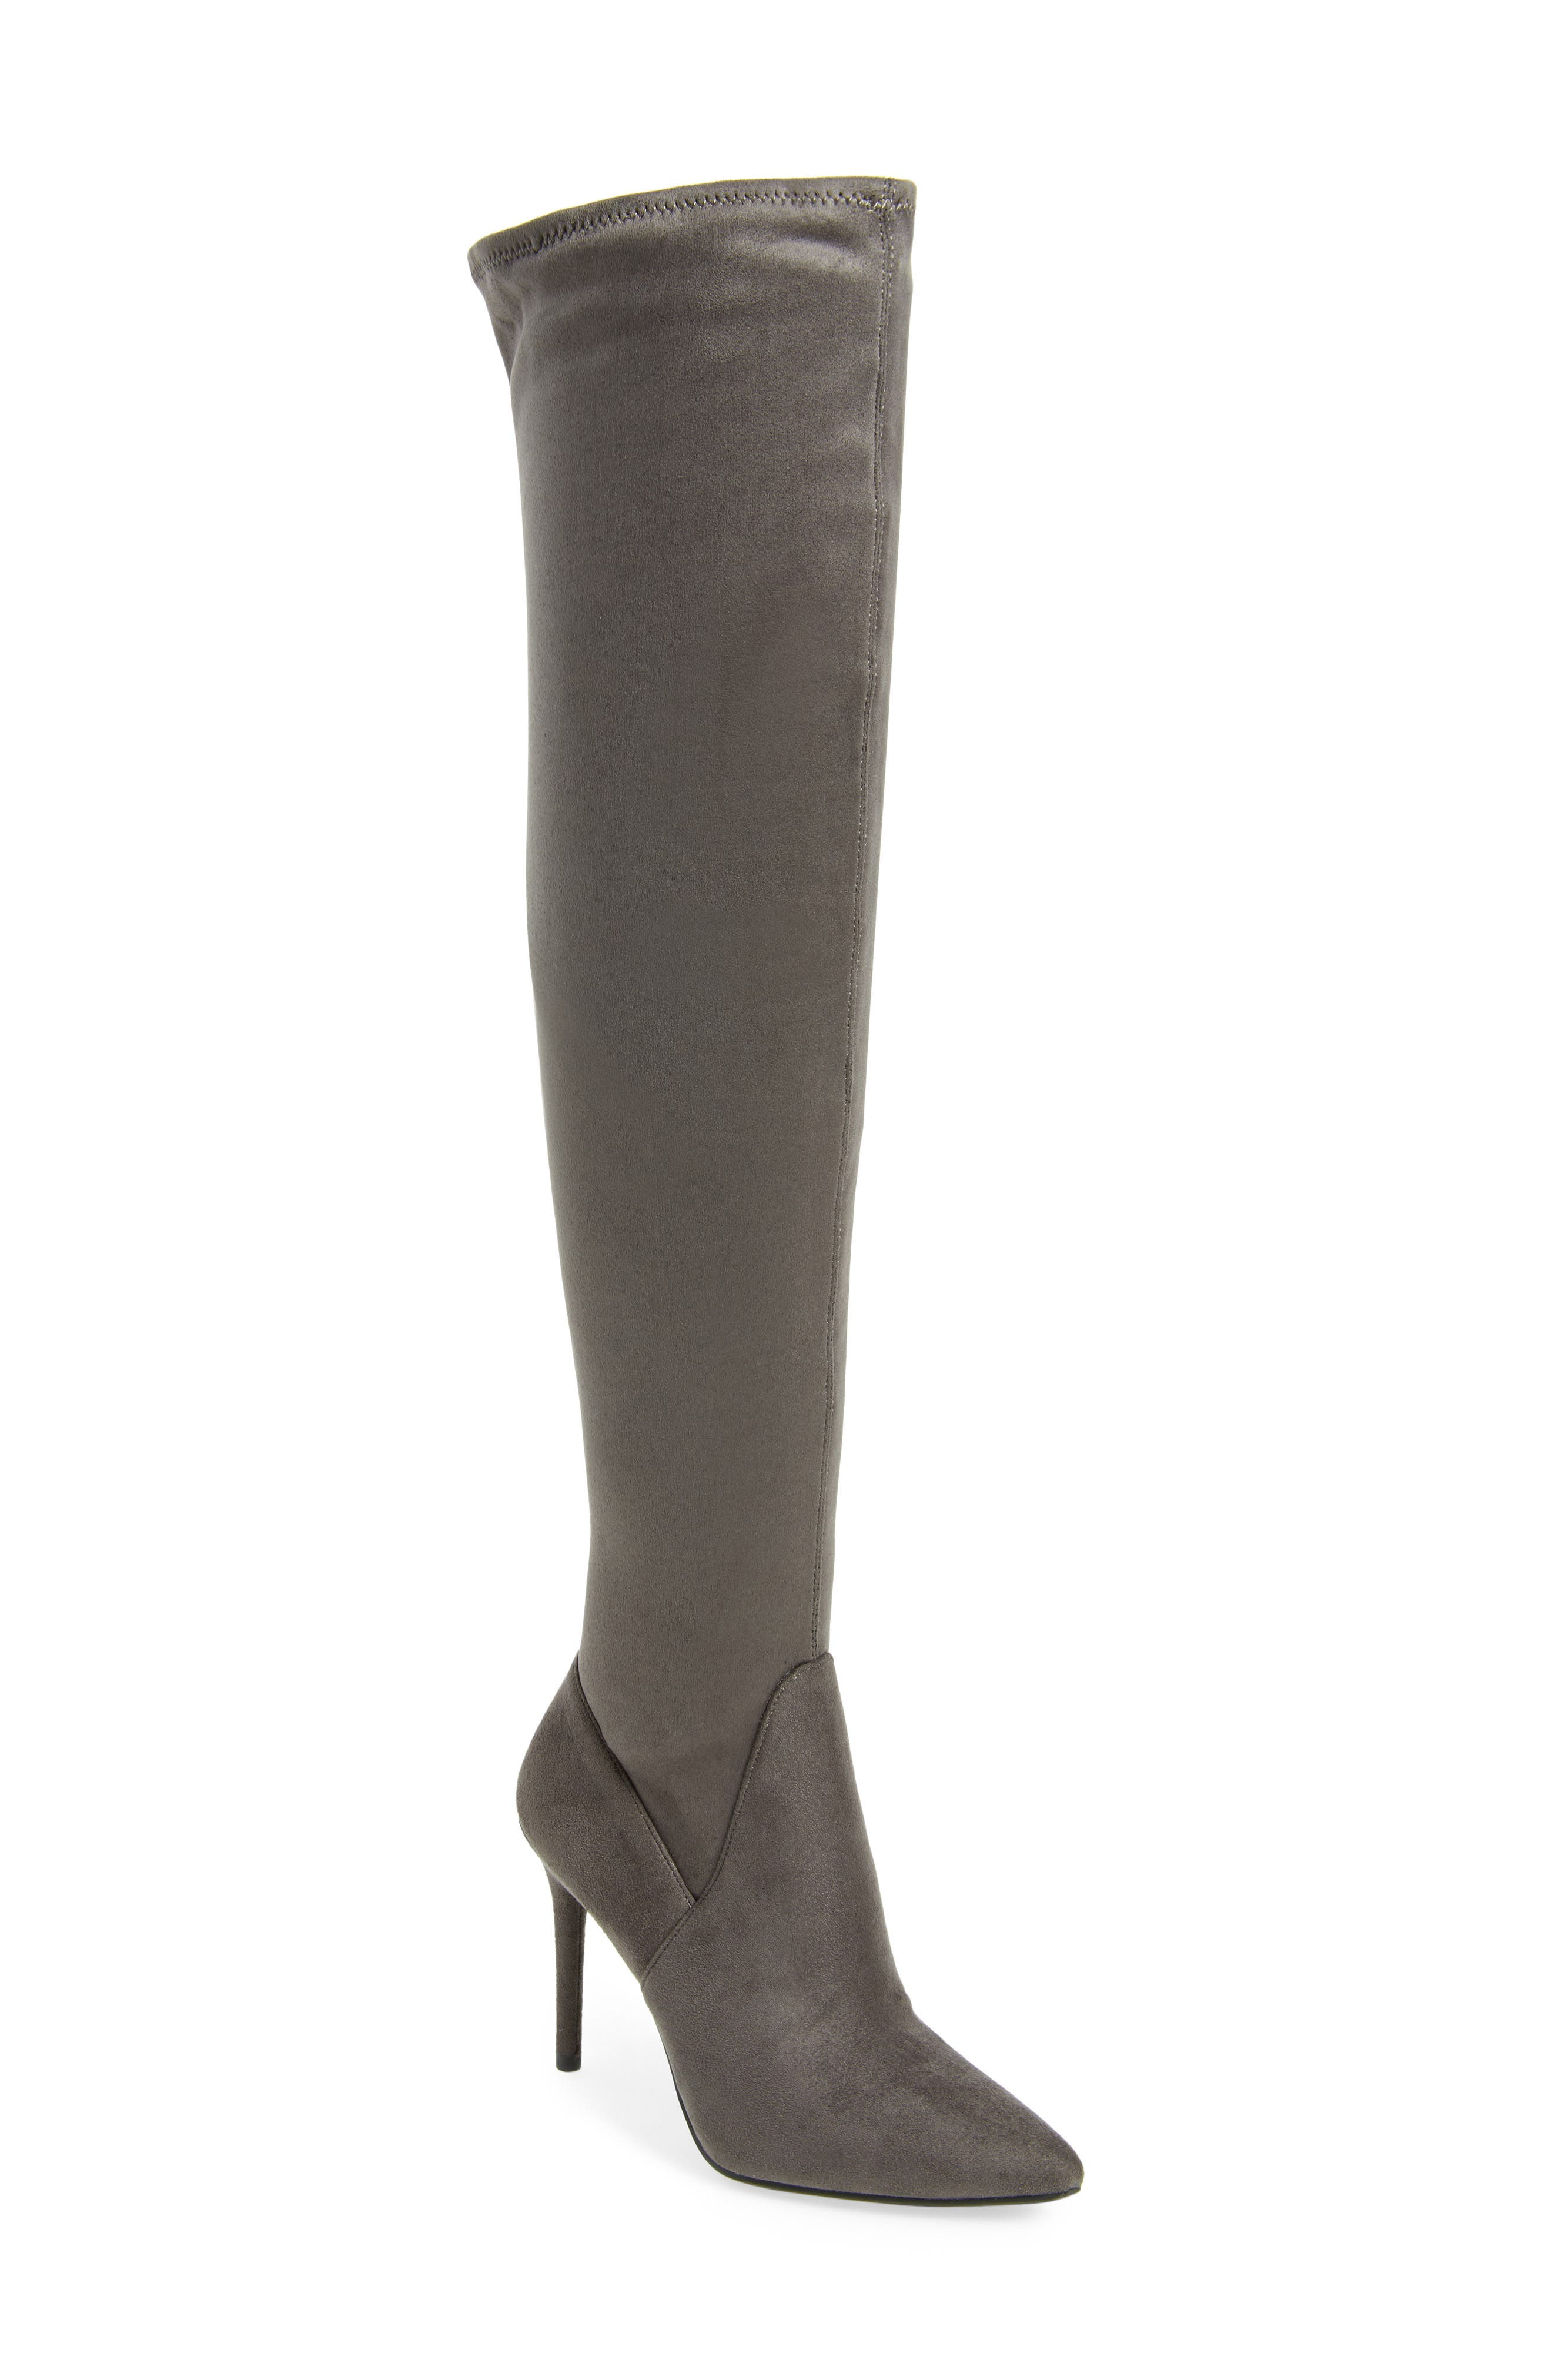 Main Image - Jessica Simpson Loring Stretch Over the Knee Boot